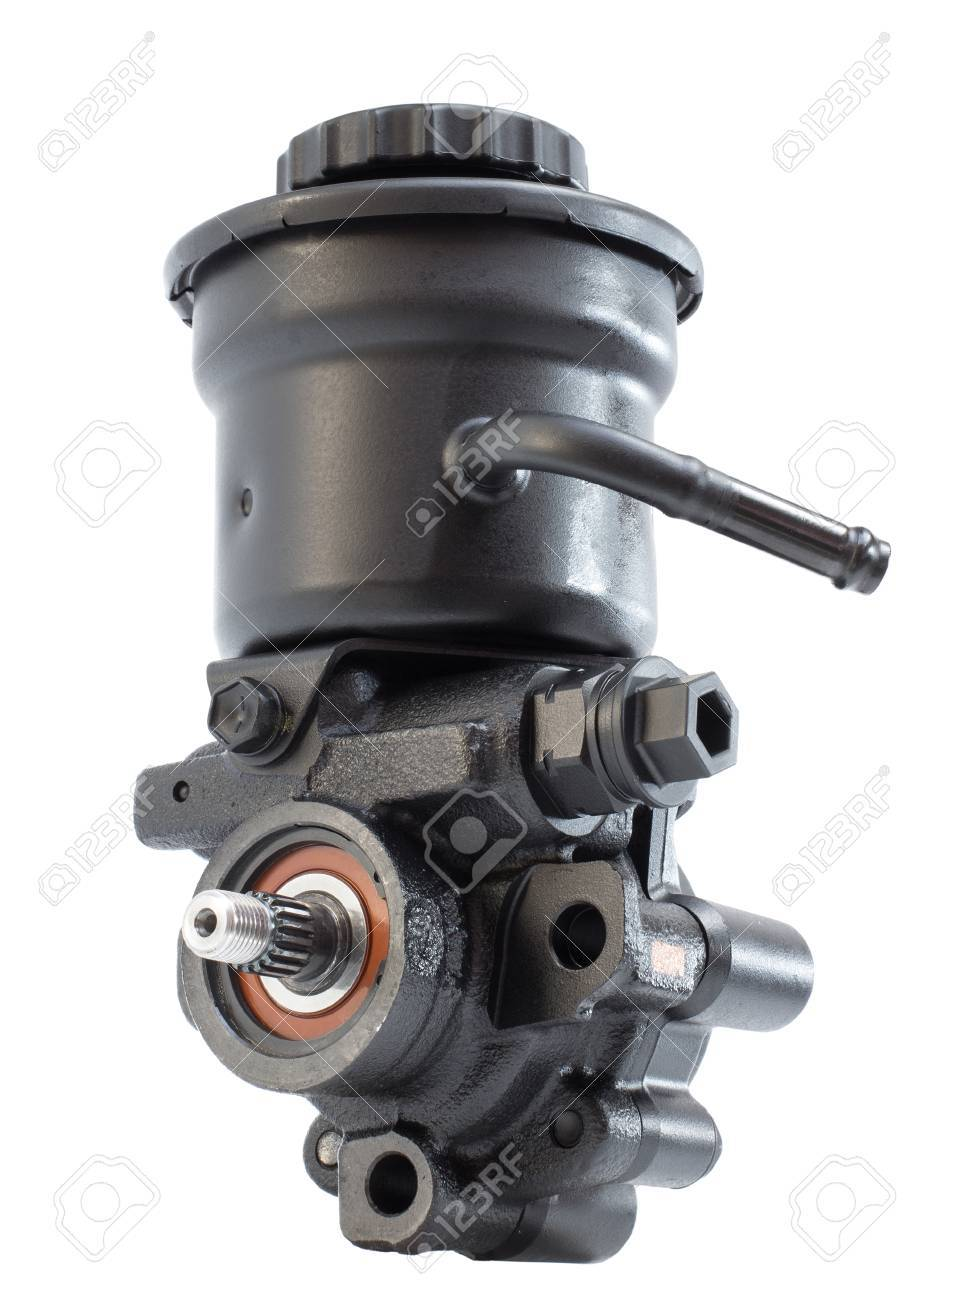 Hydraulic power steering pump with expansion tank on a white